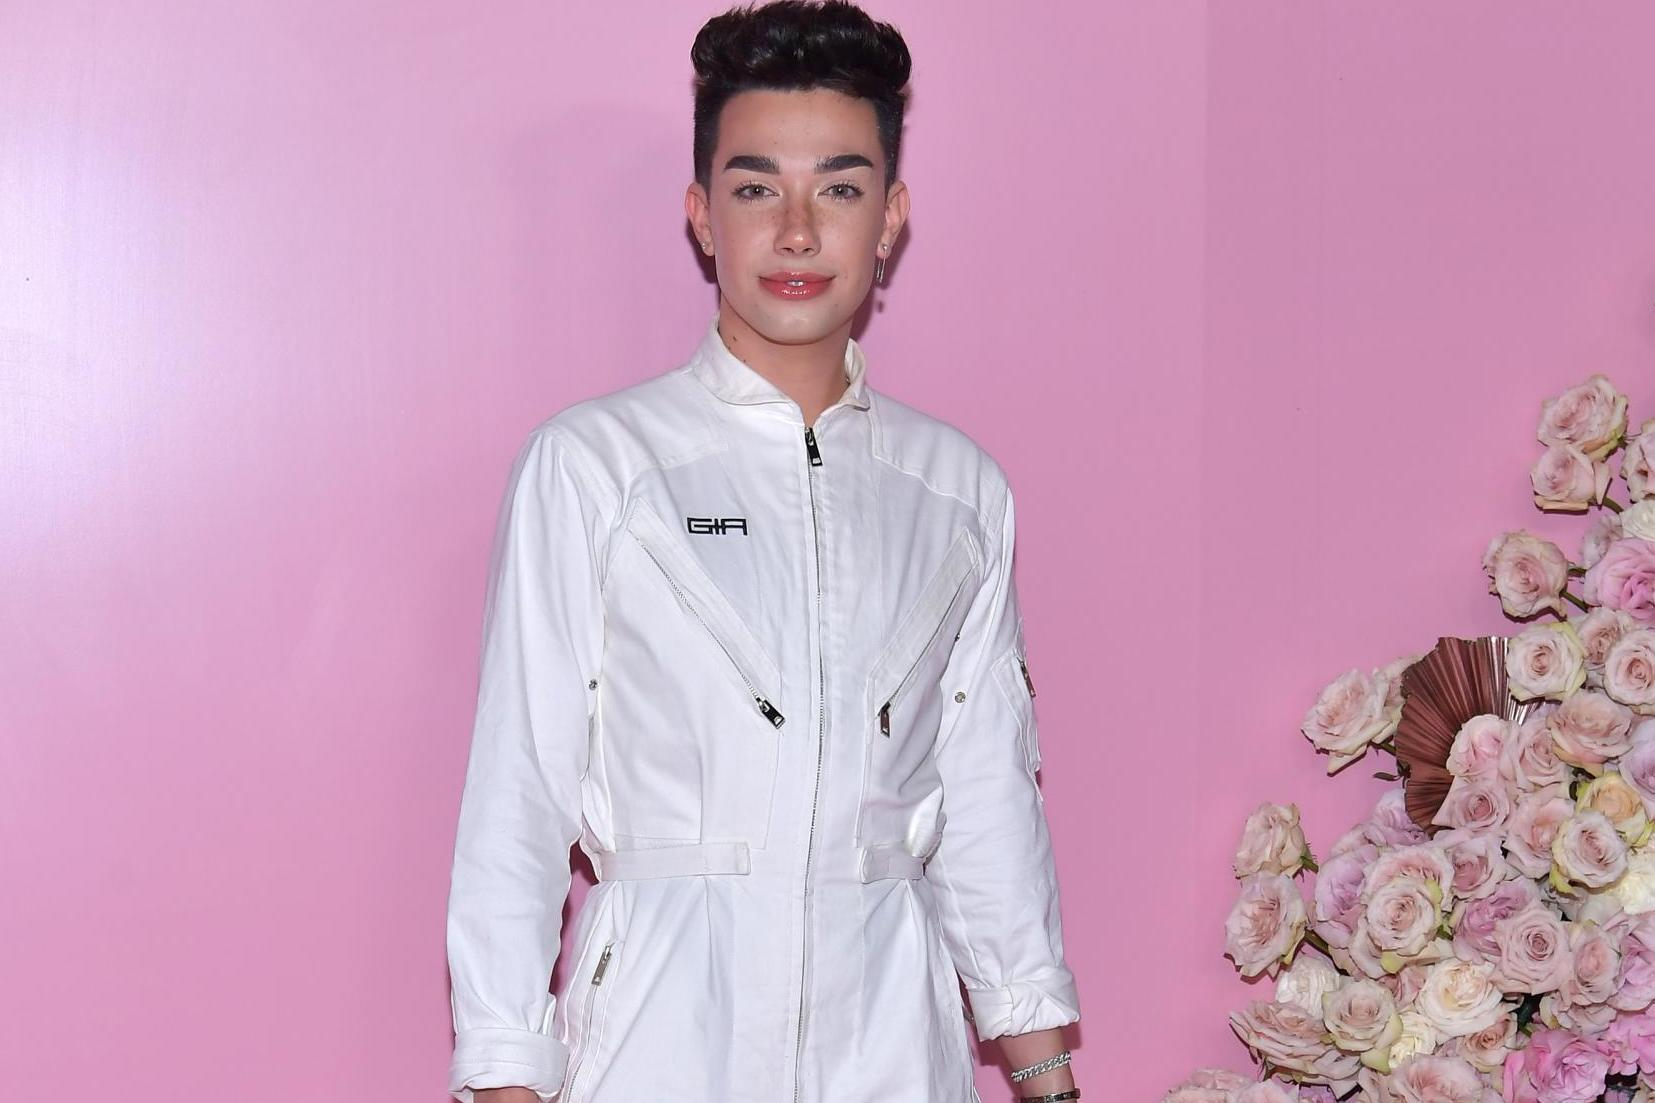 f2370319ba8 James Charles  online clothing store removed following YouTube feud ...